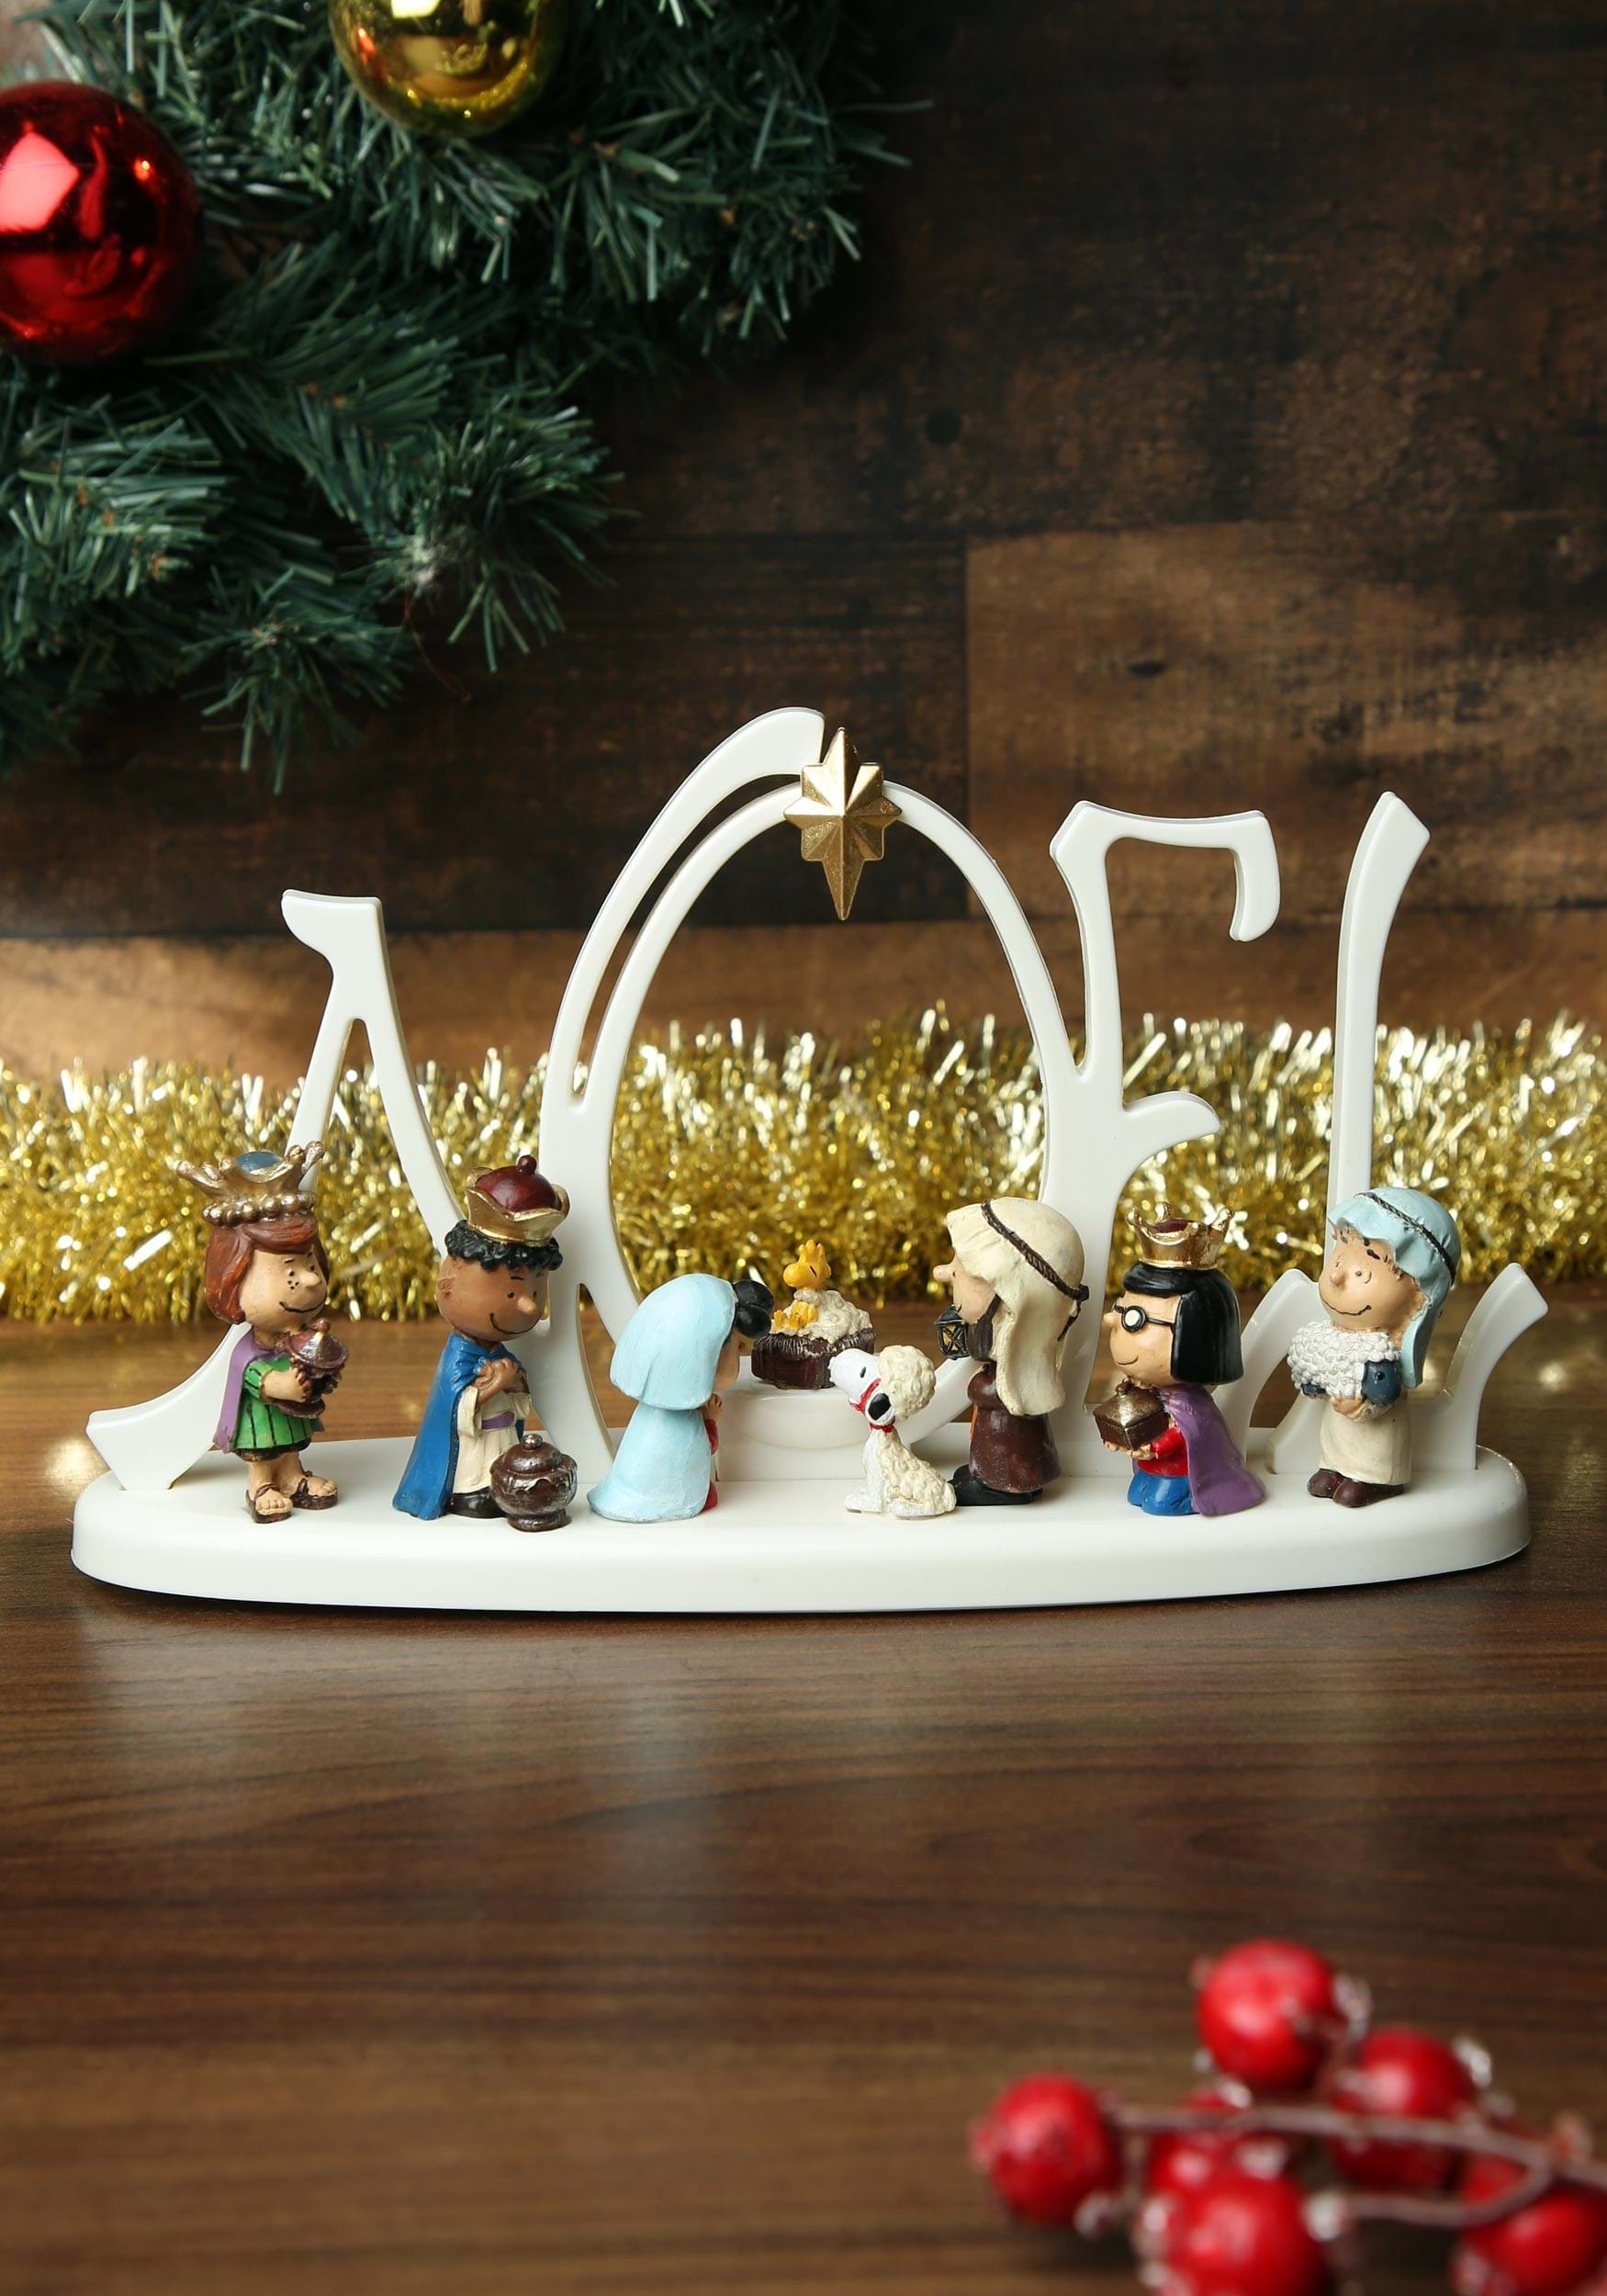 Lit Peanuts Led Nativity